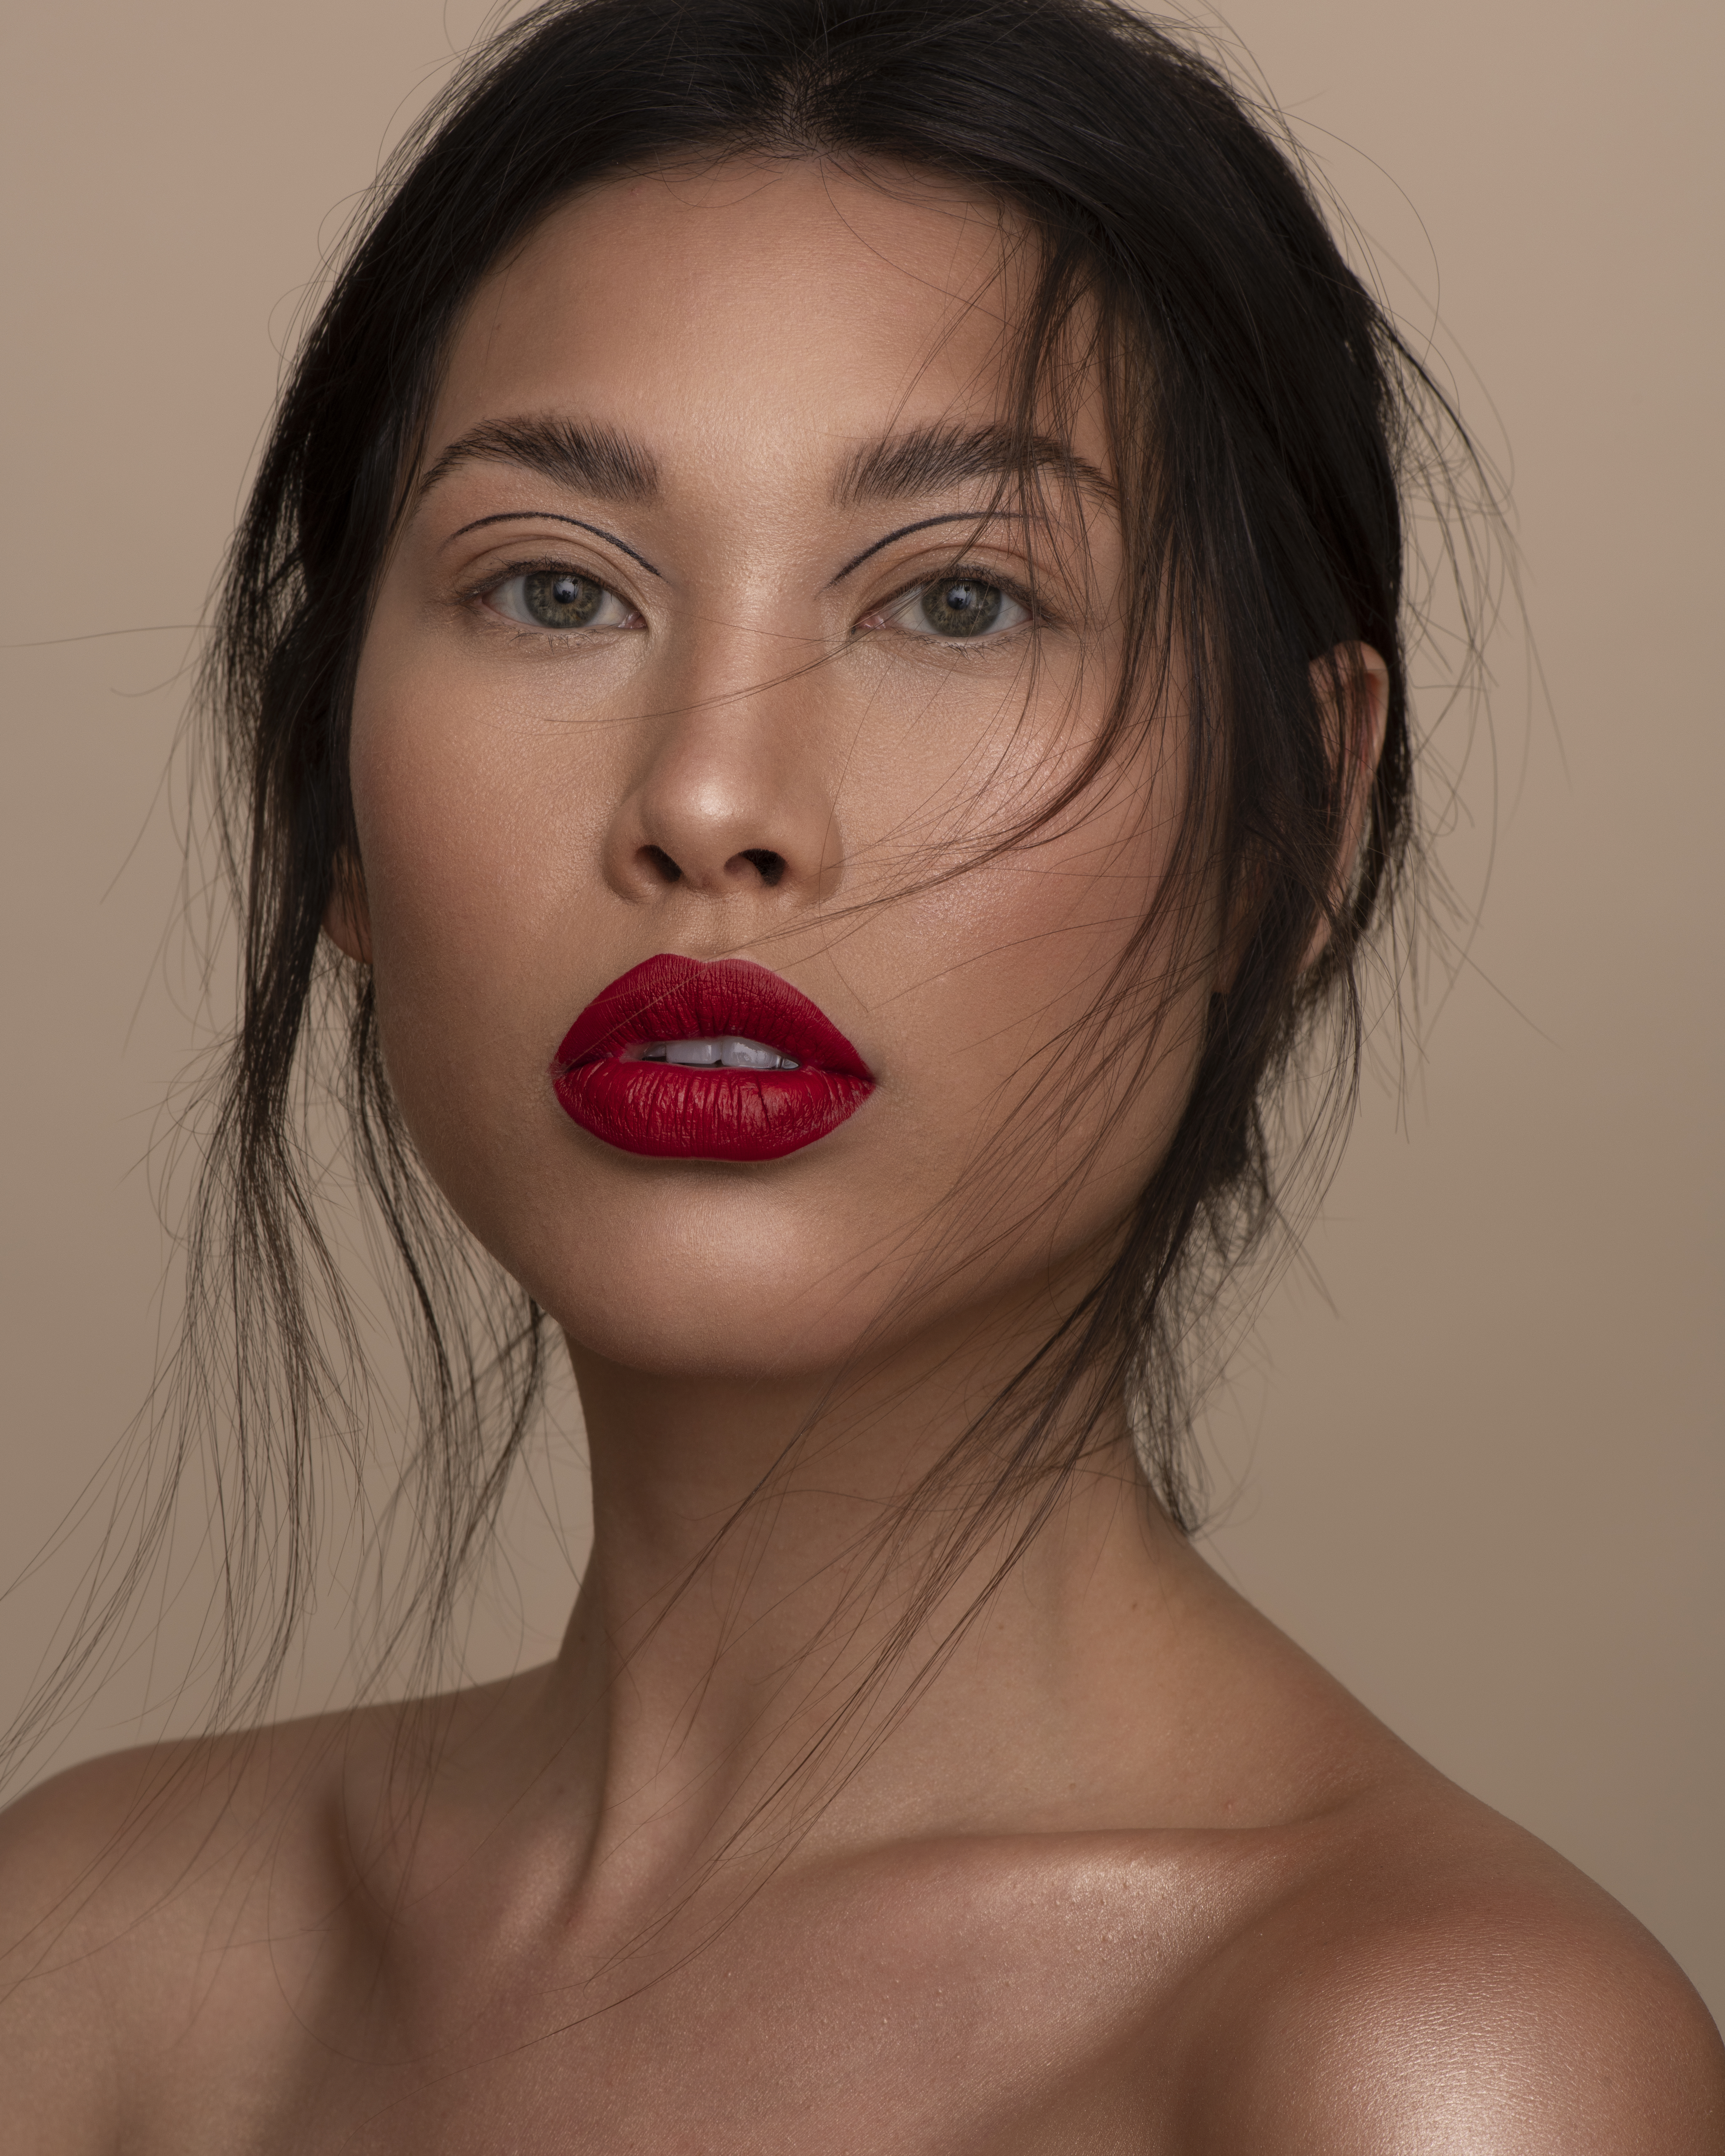 London Beauty Photographer